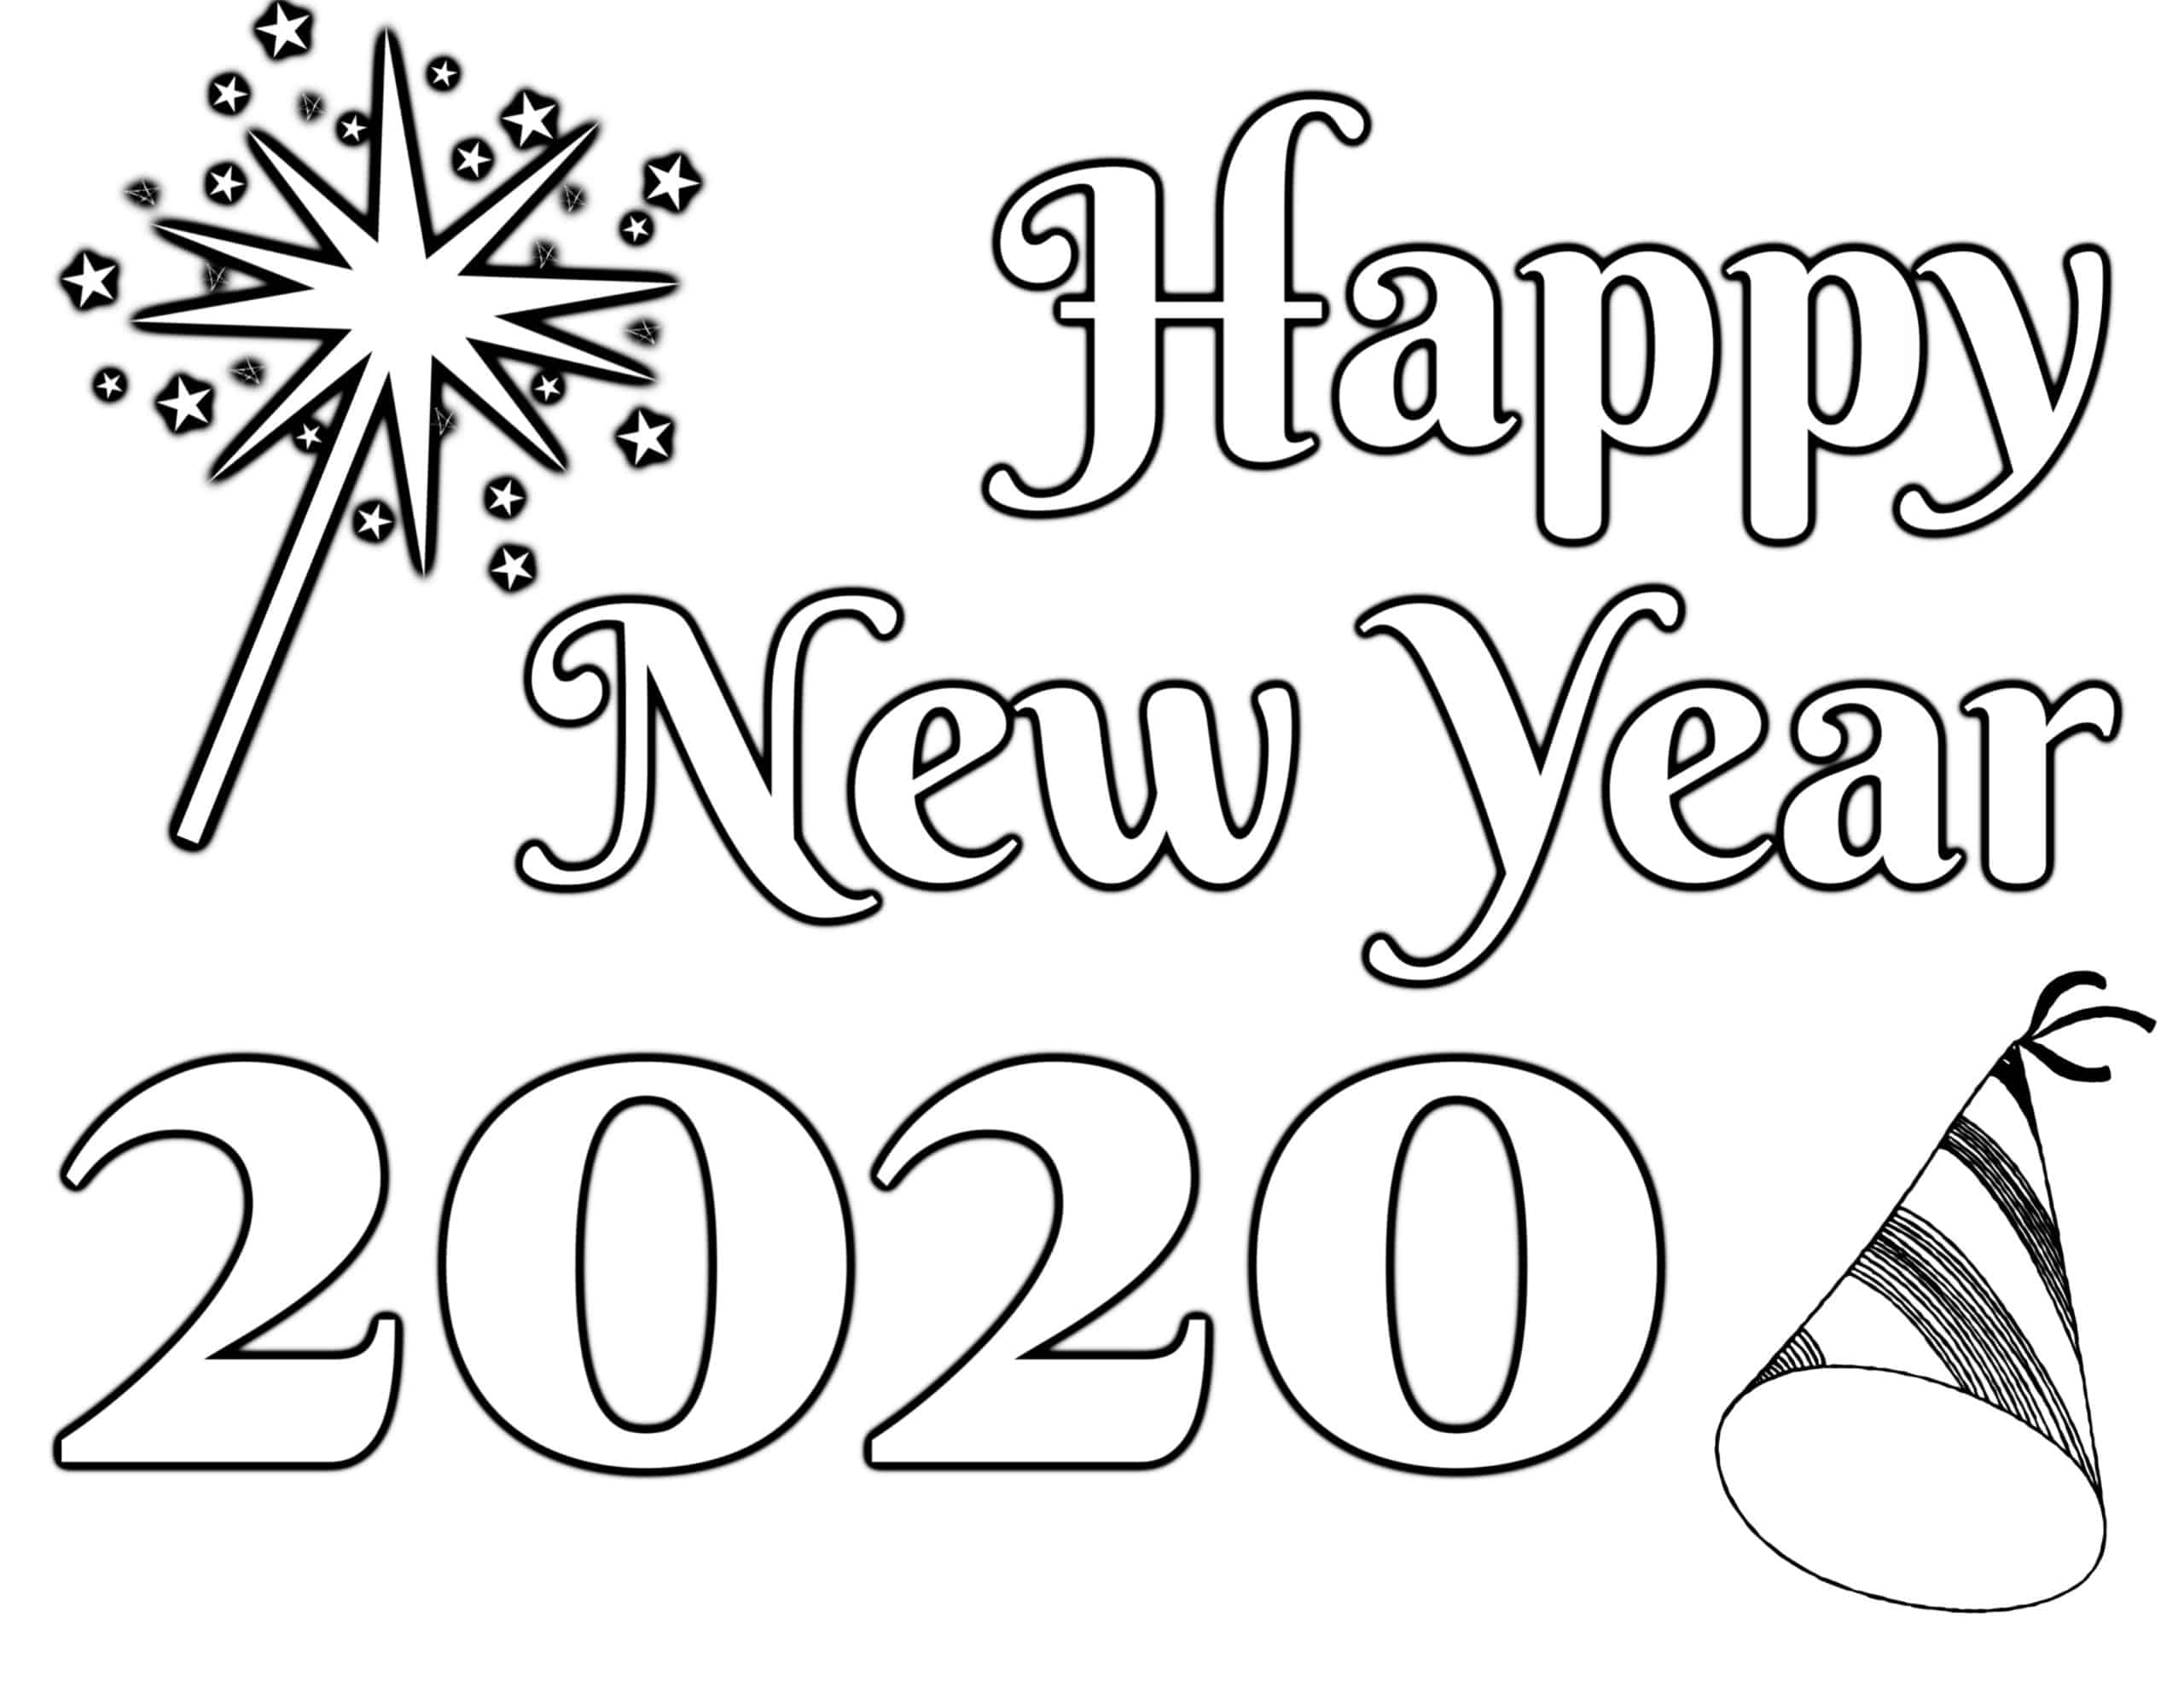 New Year's Coloring Page 2020